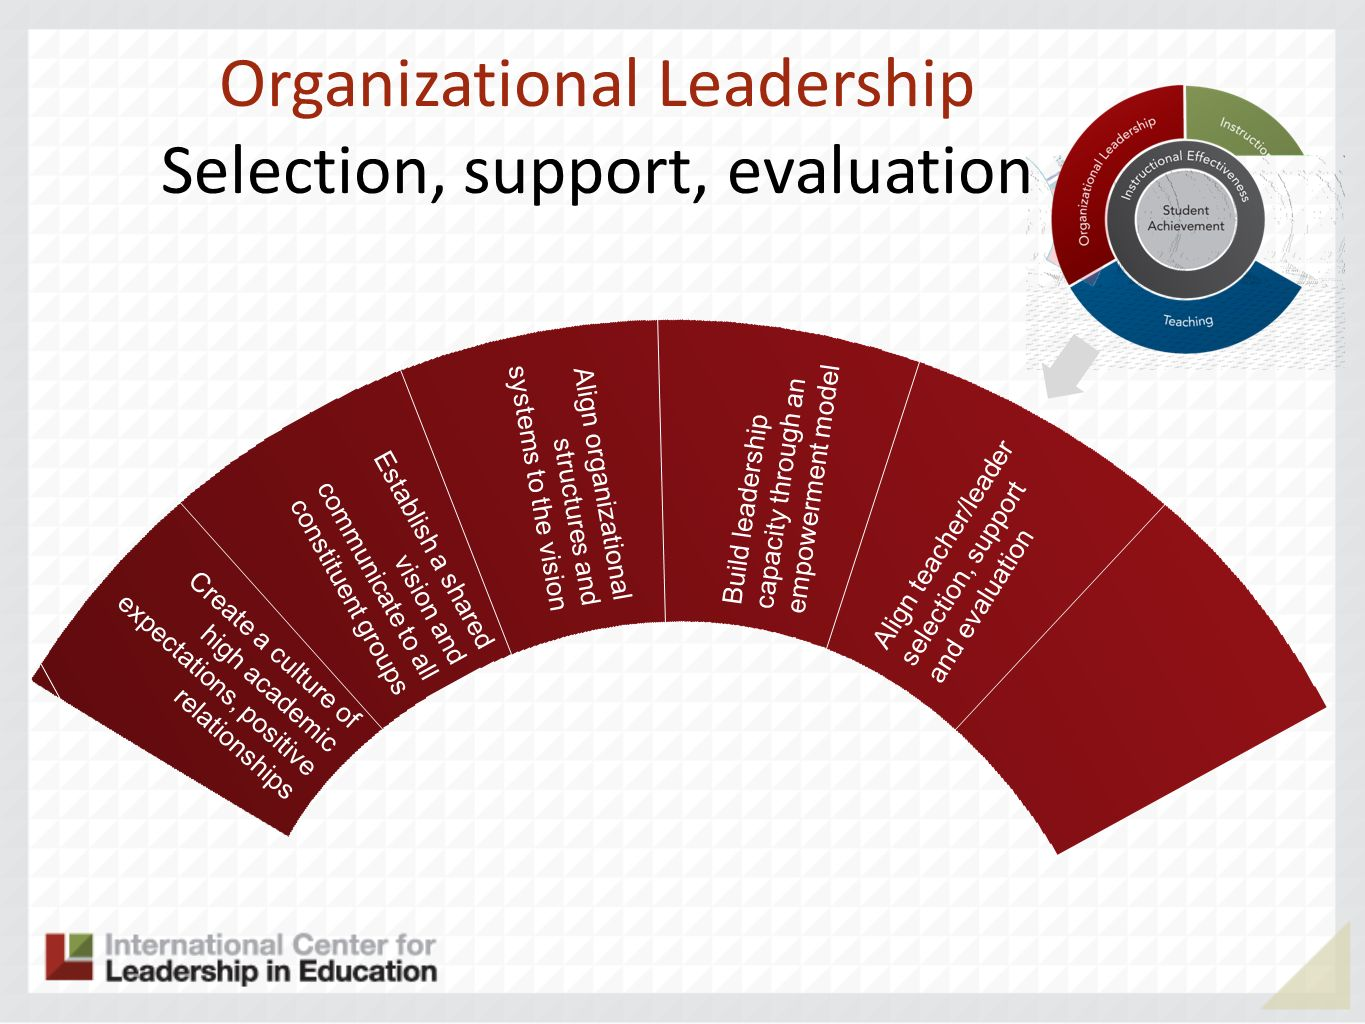 Organizational Leadership Selection, support, evaluation Align teacher/leader selection, support and evaluation Create a culture of high academic expectations, positive relationships Establish a shared vision and communicate to all constituent groups Align organizational structures and systems to the vision Build leadership capacity through an empowerment model